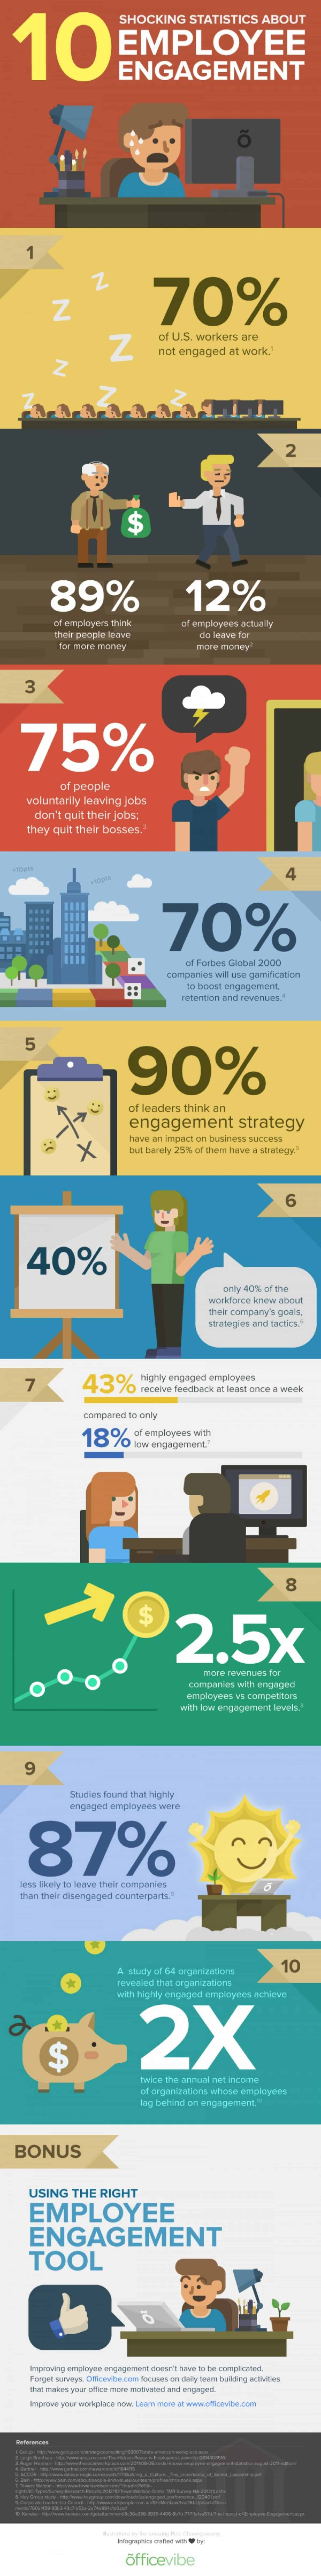 10-shocking-statistics-about-employee-engagement_52e82c76b45cb_w1500